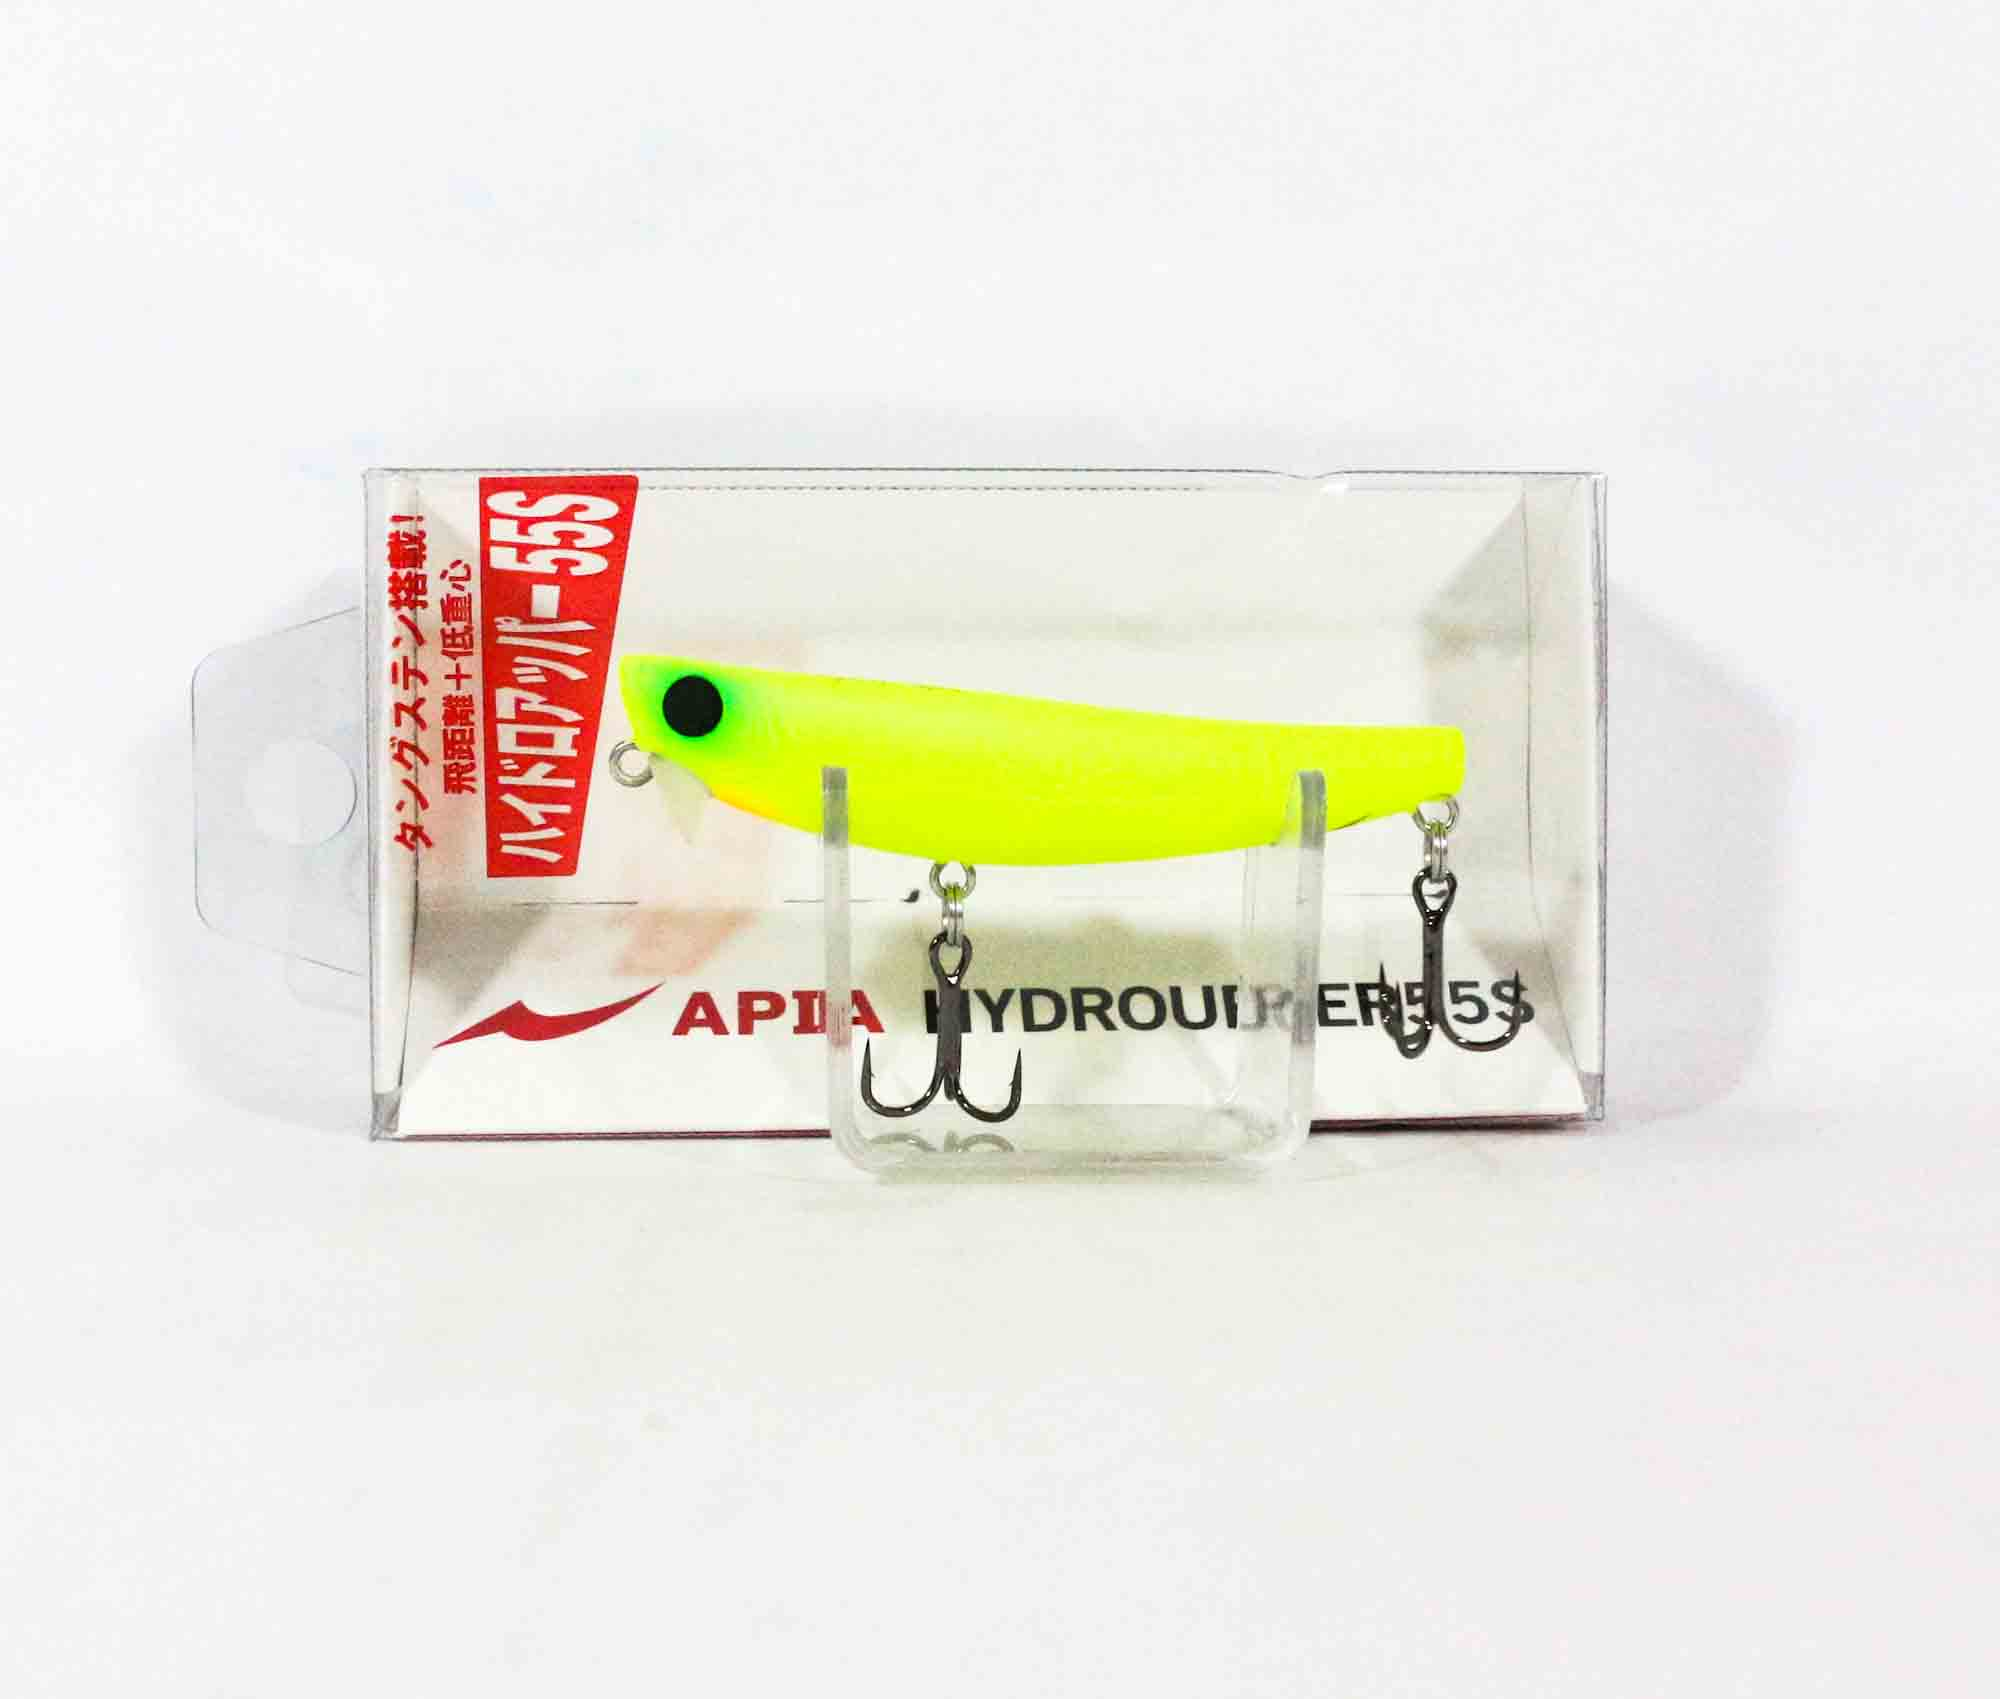 Apia Hydroupper 55S Sinking Lure 12 (9211)